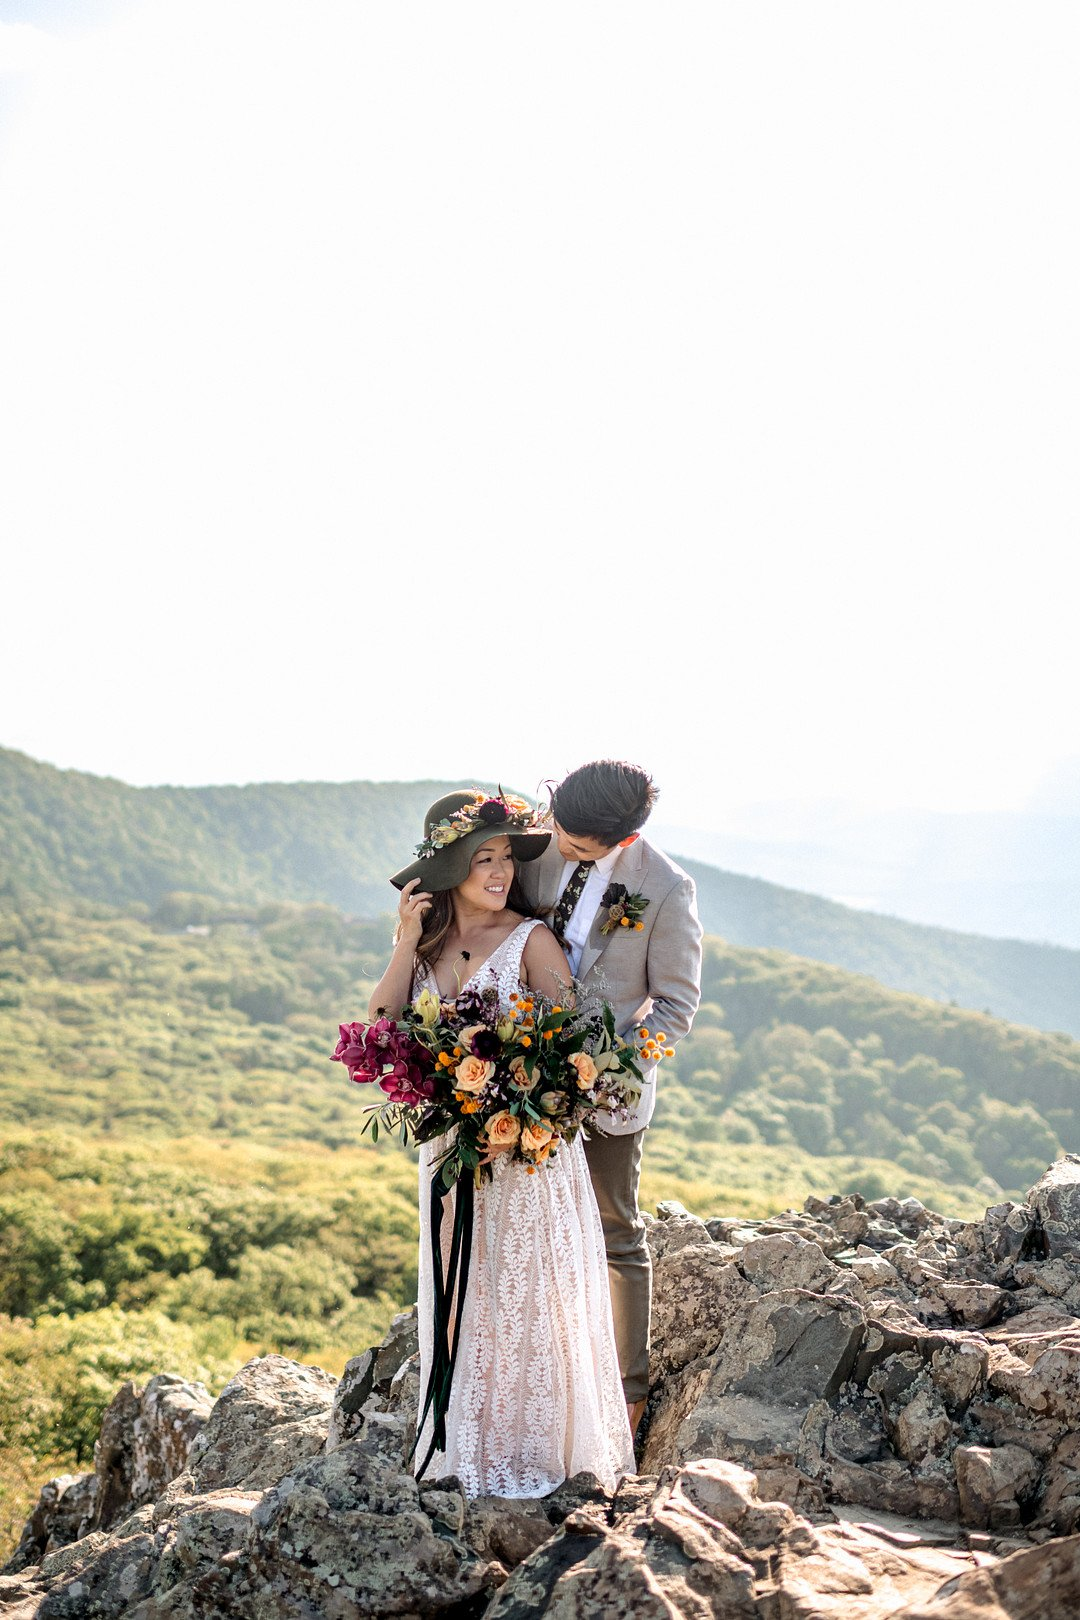 Boho Mountain Elopement in Shenandoah National Park_1001 Angles Photography_Shenandoah National Park Adventure Elopement-106_low